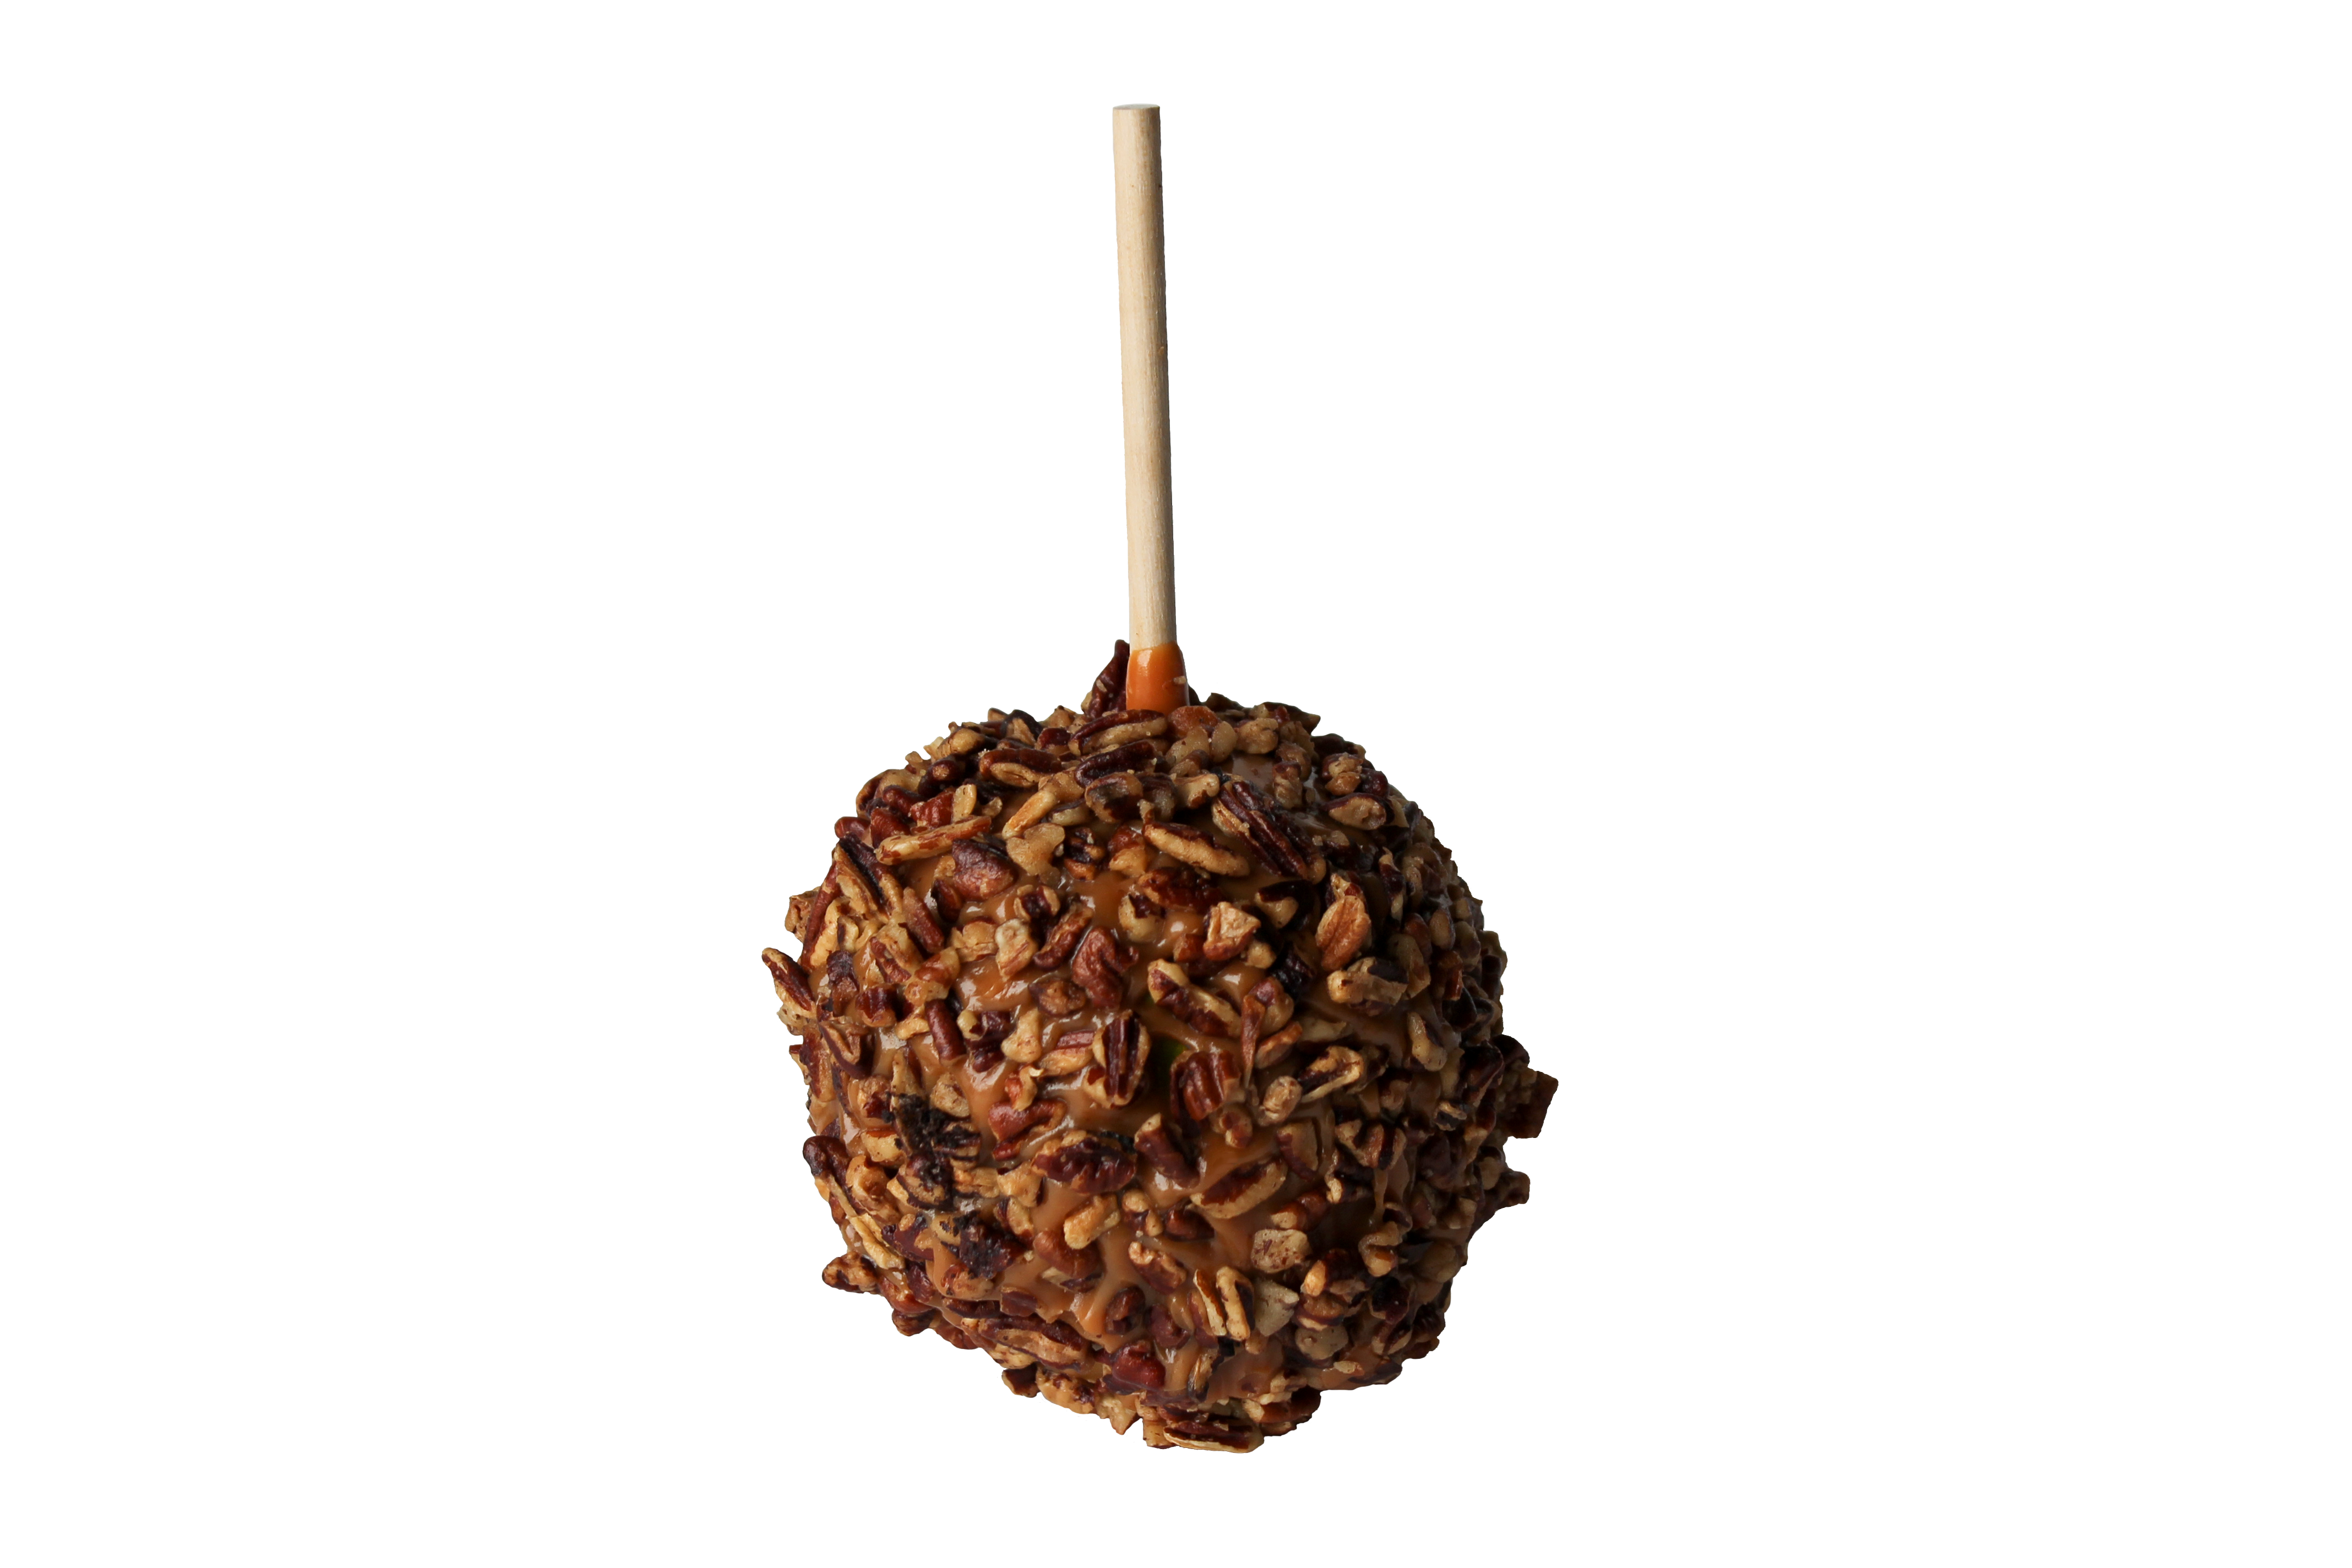 Candied apples png. Shop get happy usa